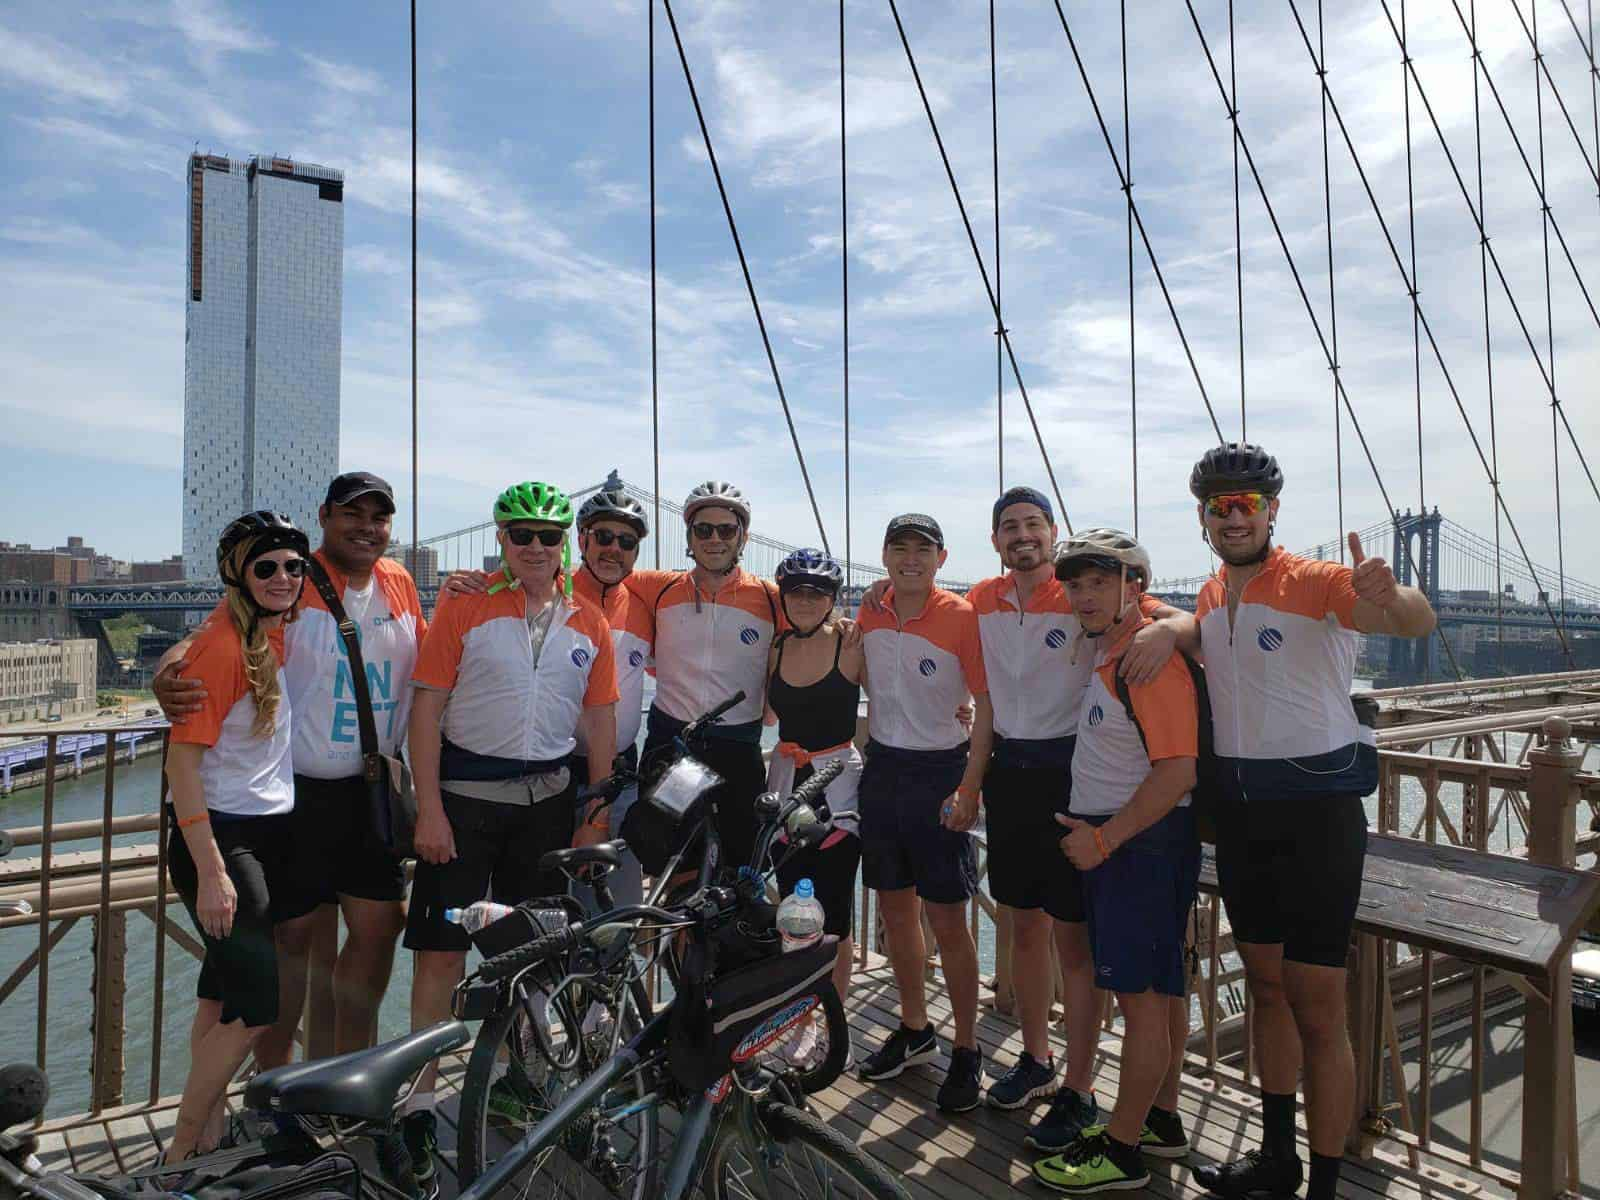 MTS Logistics, NYC-Based National Logistics Provider, Raises Over $50,000 for Autism Awareness with 9th Annual Bike Tour with MTS for Autism